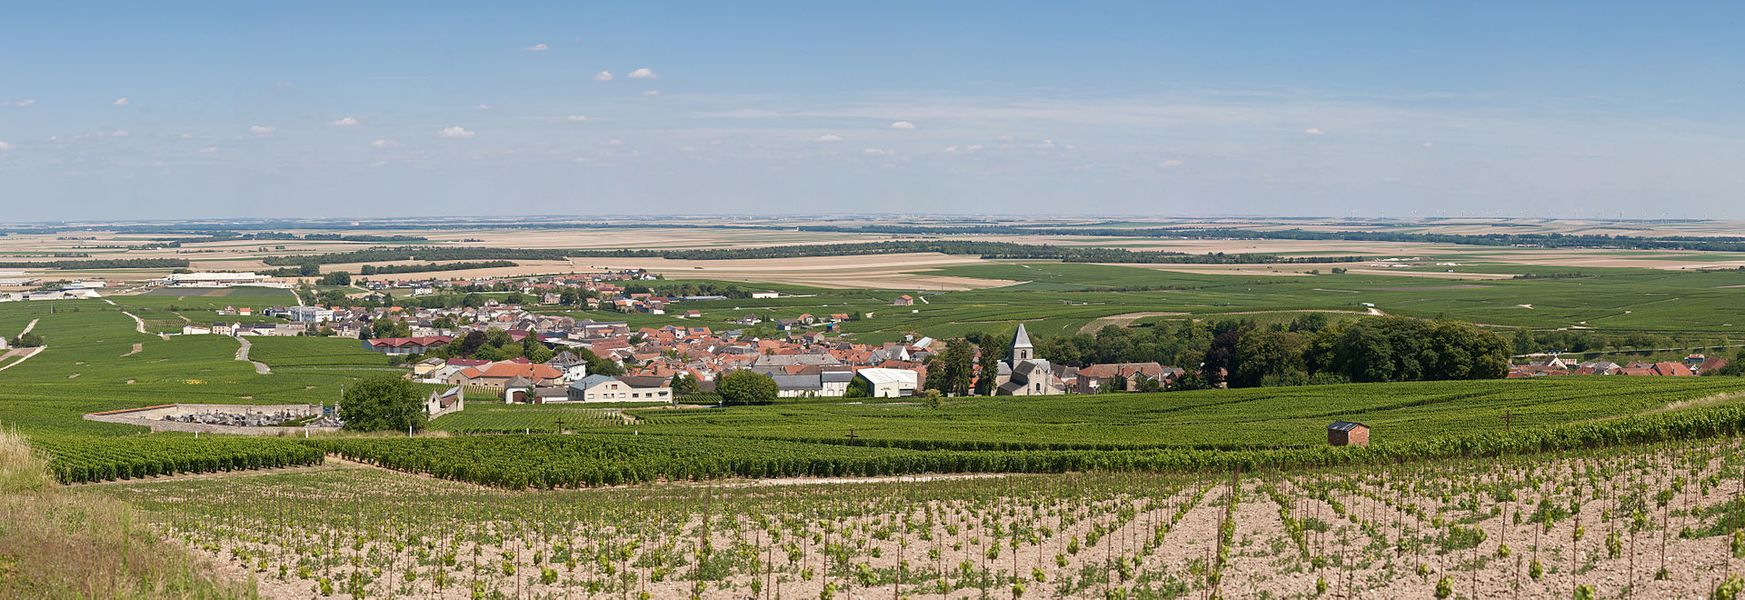 The village of Le-Mesnil-sur-Oger in Champagne, France, as viewed from the vinyards to the east.